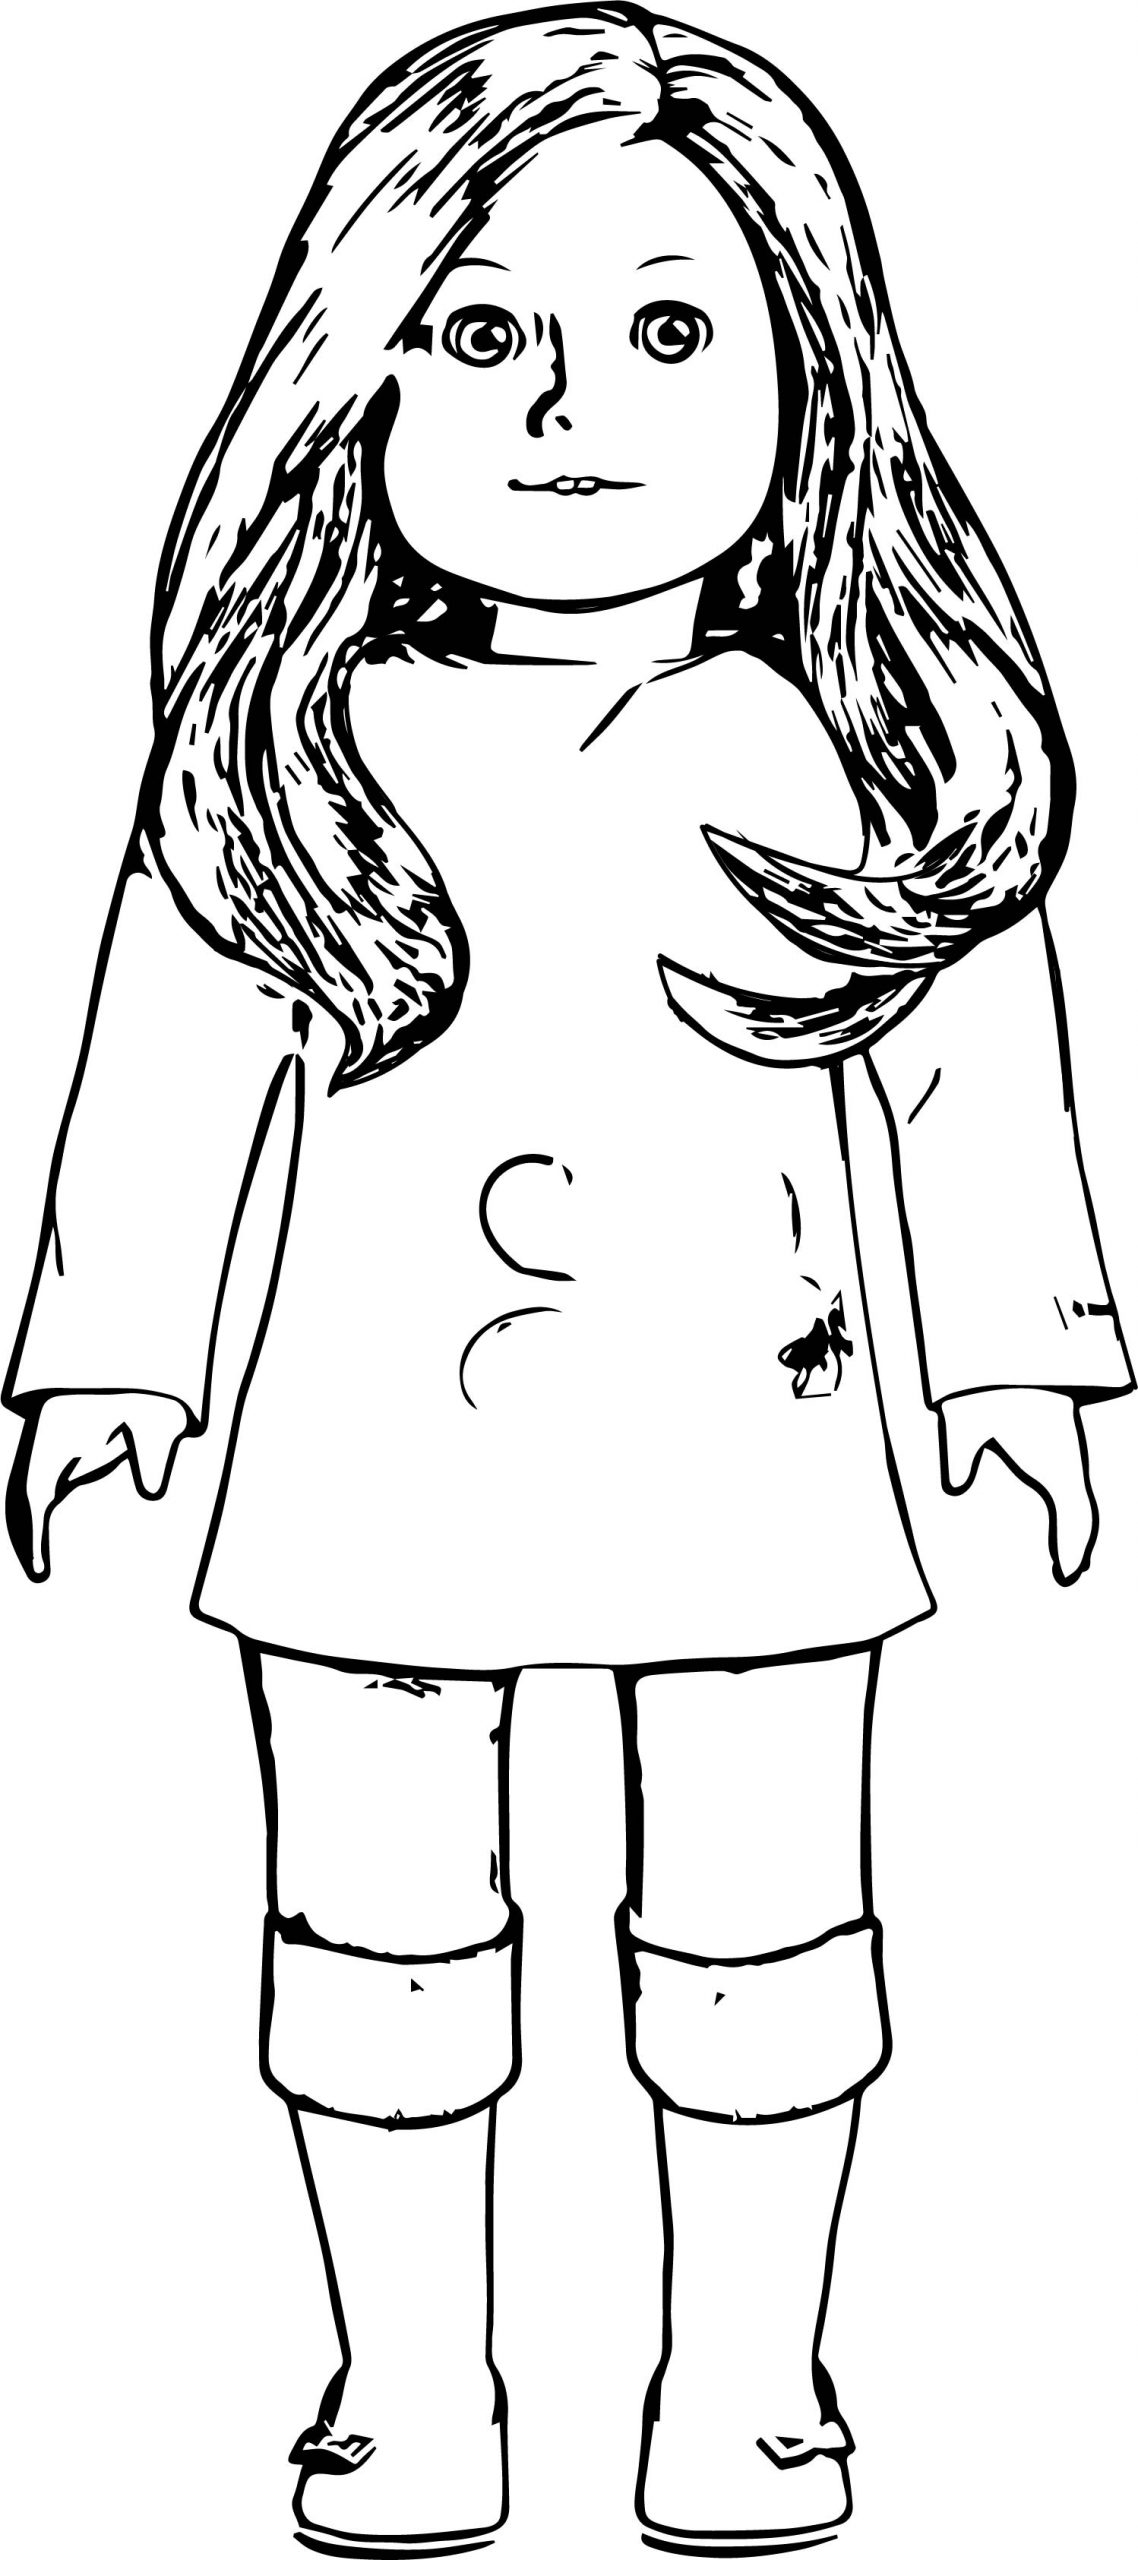 american girl coloring page 25 of the best ideas for free american girl coloring pages american coloring girl page